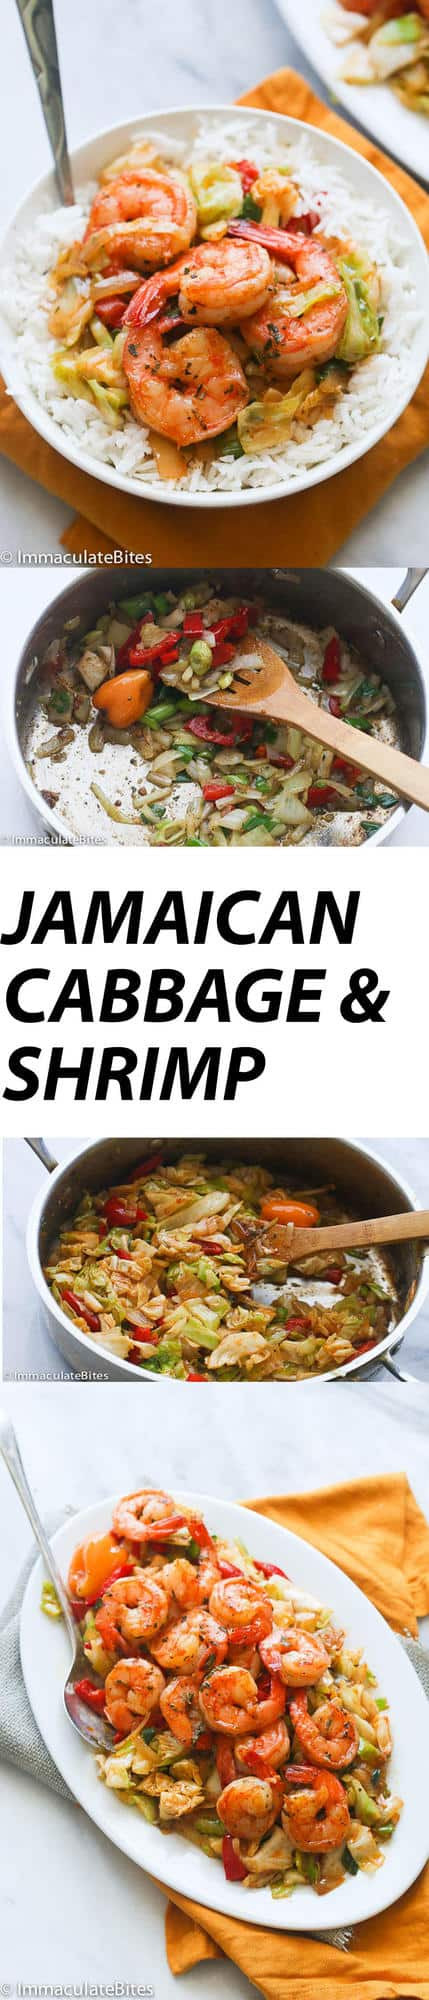 JAMAICAN-CABBAGE